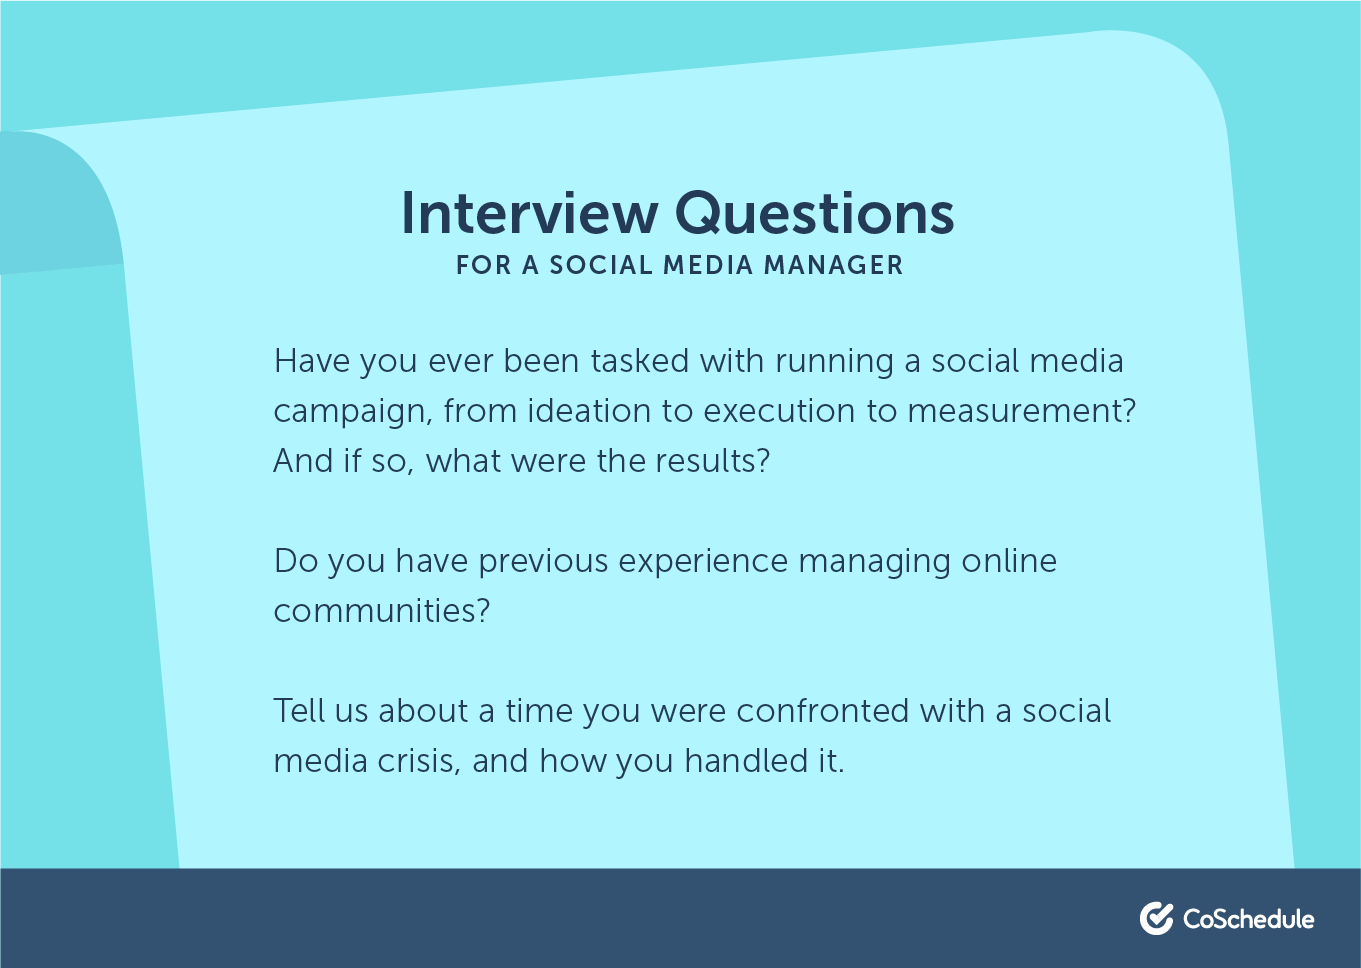 Interview questions for a social media manager position